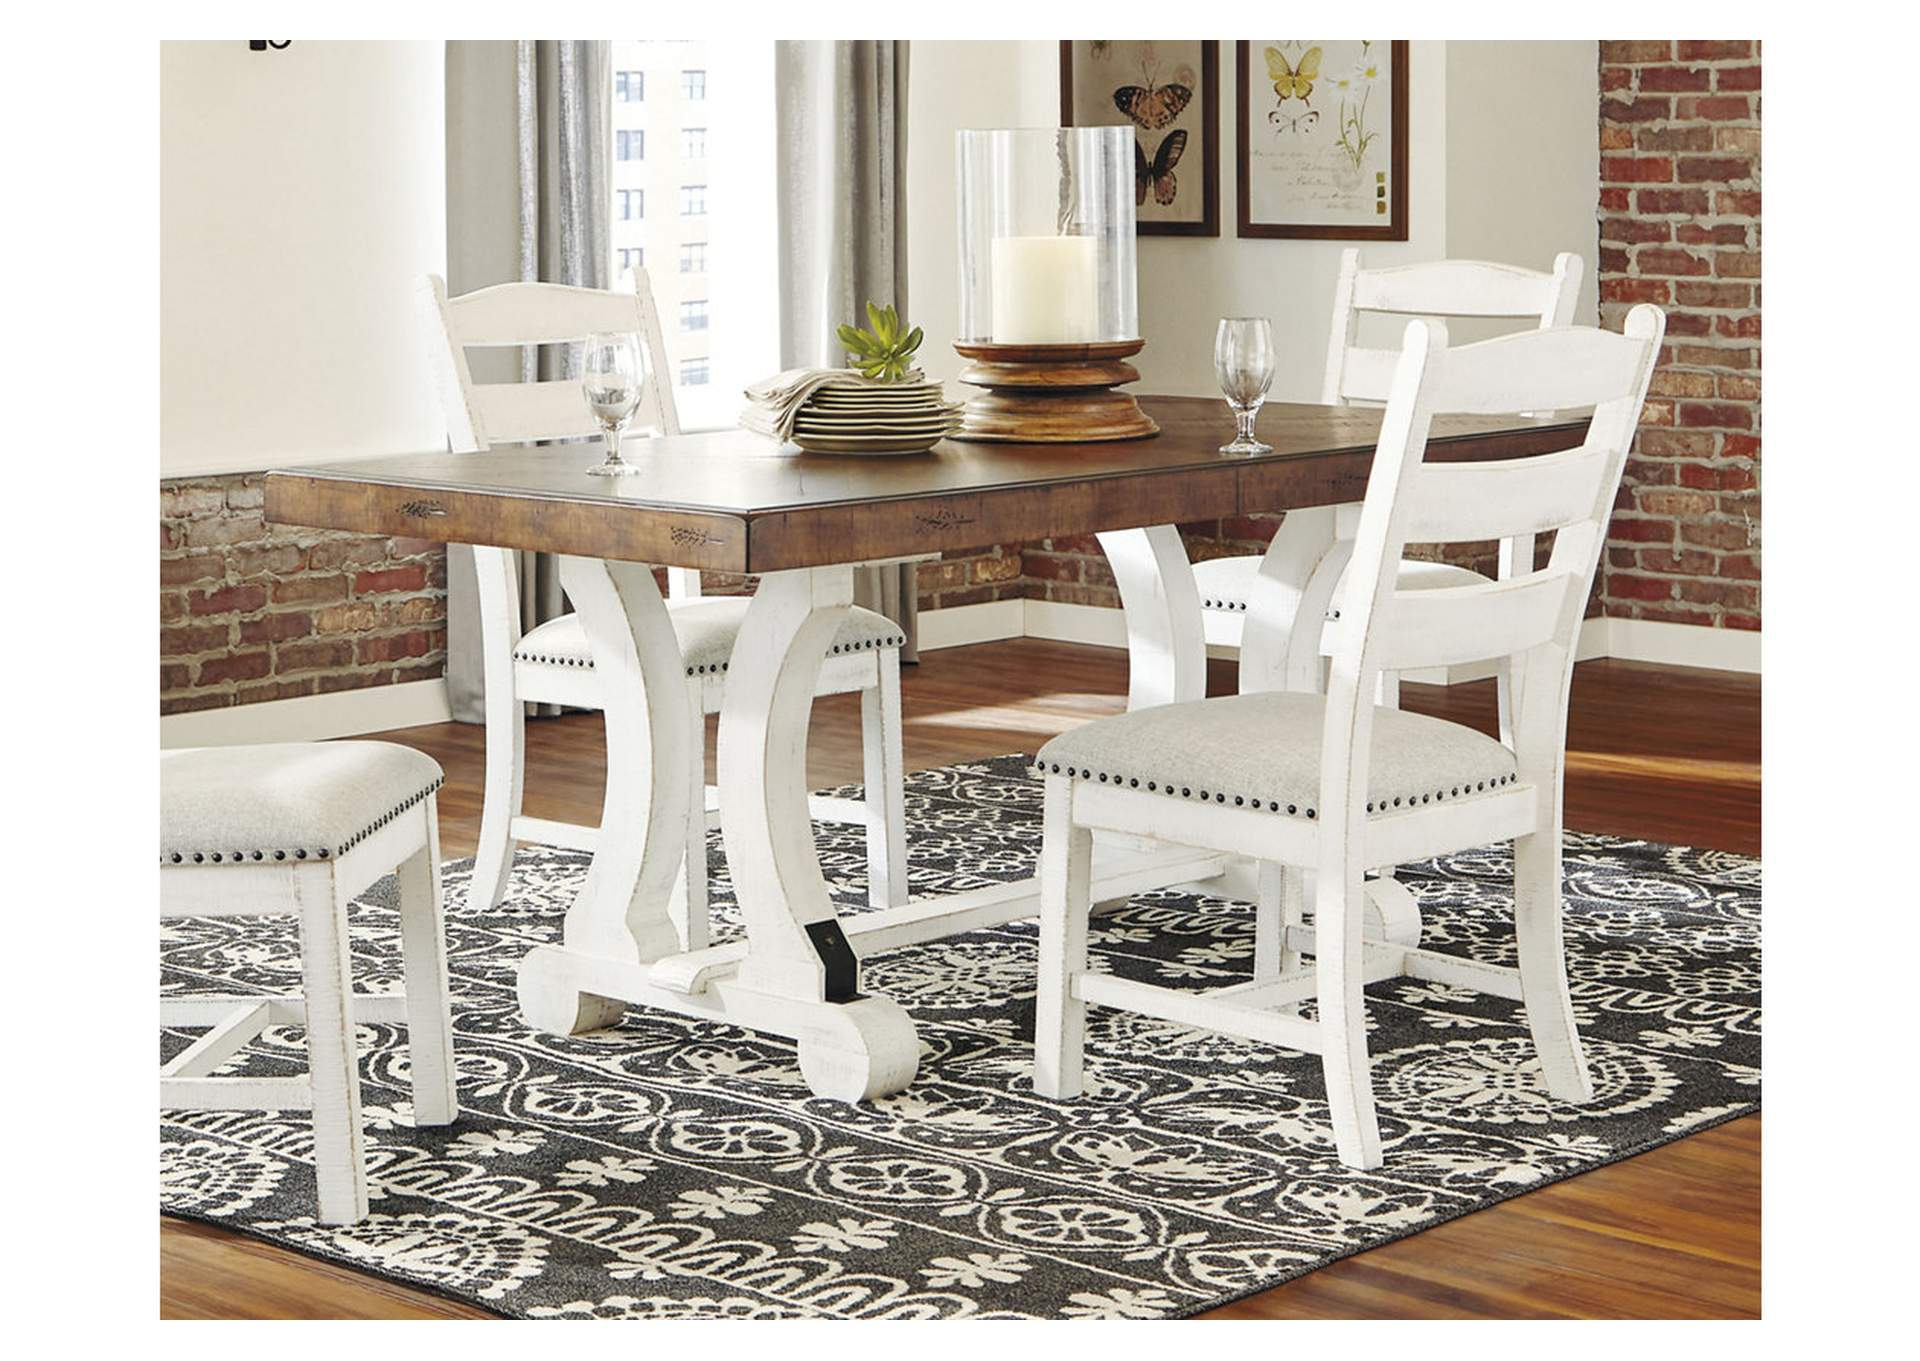 Valebeck White/Brown Dining Table Homeline Furniture